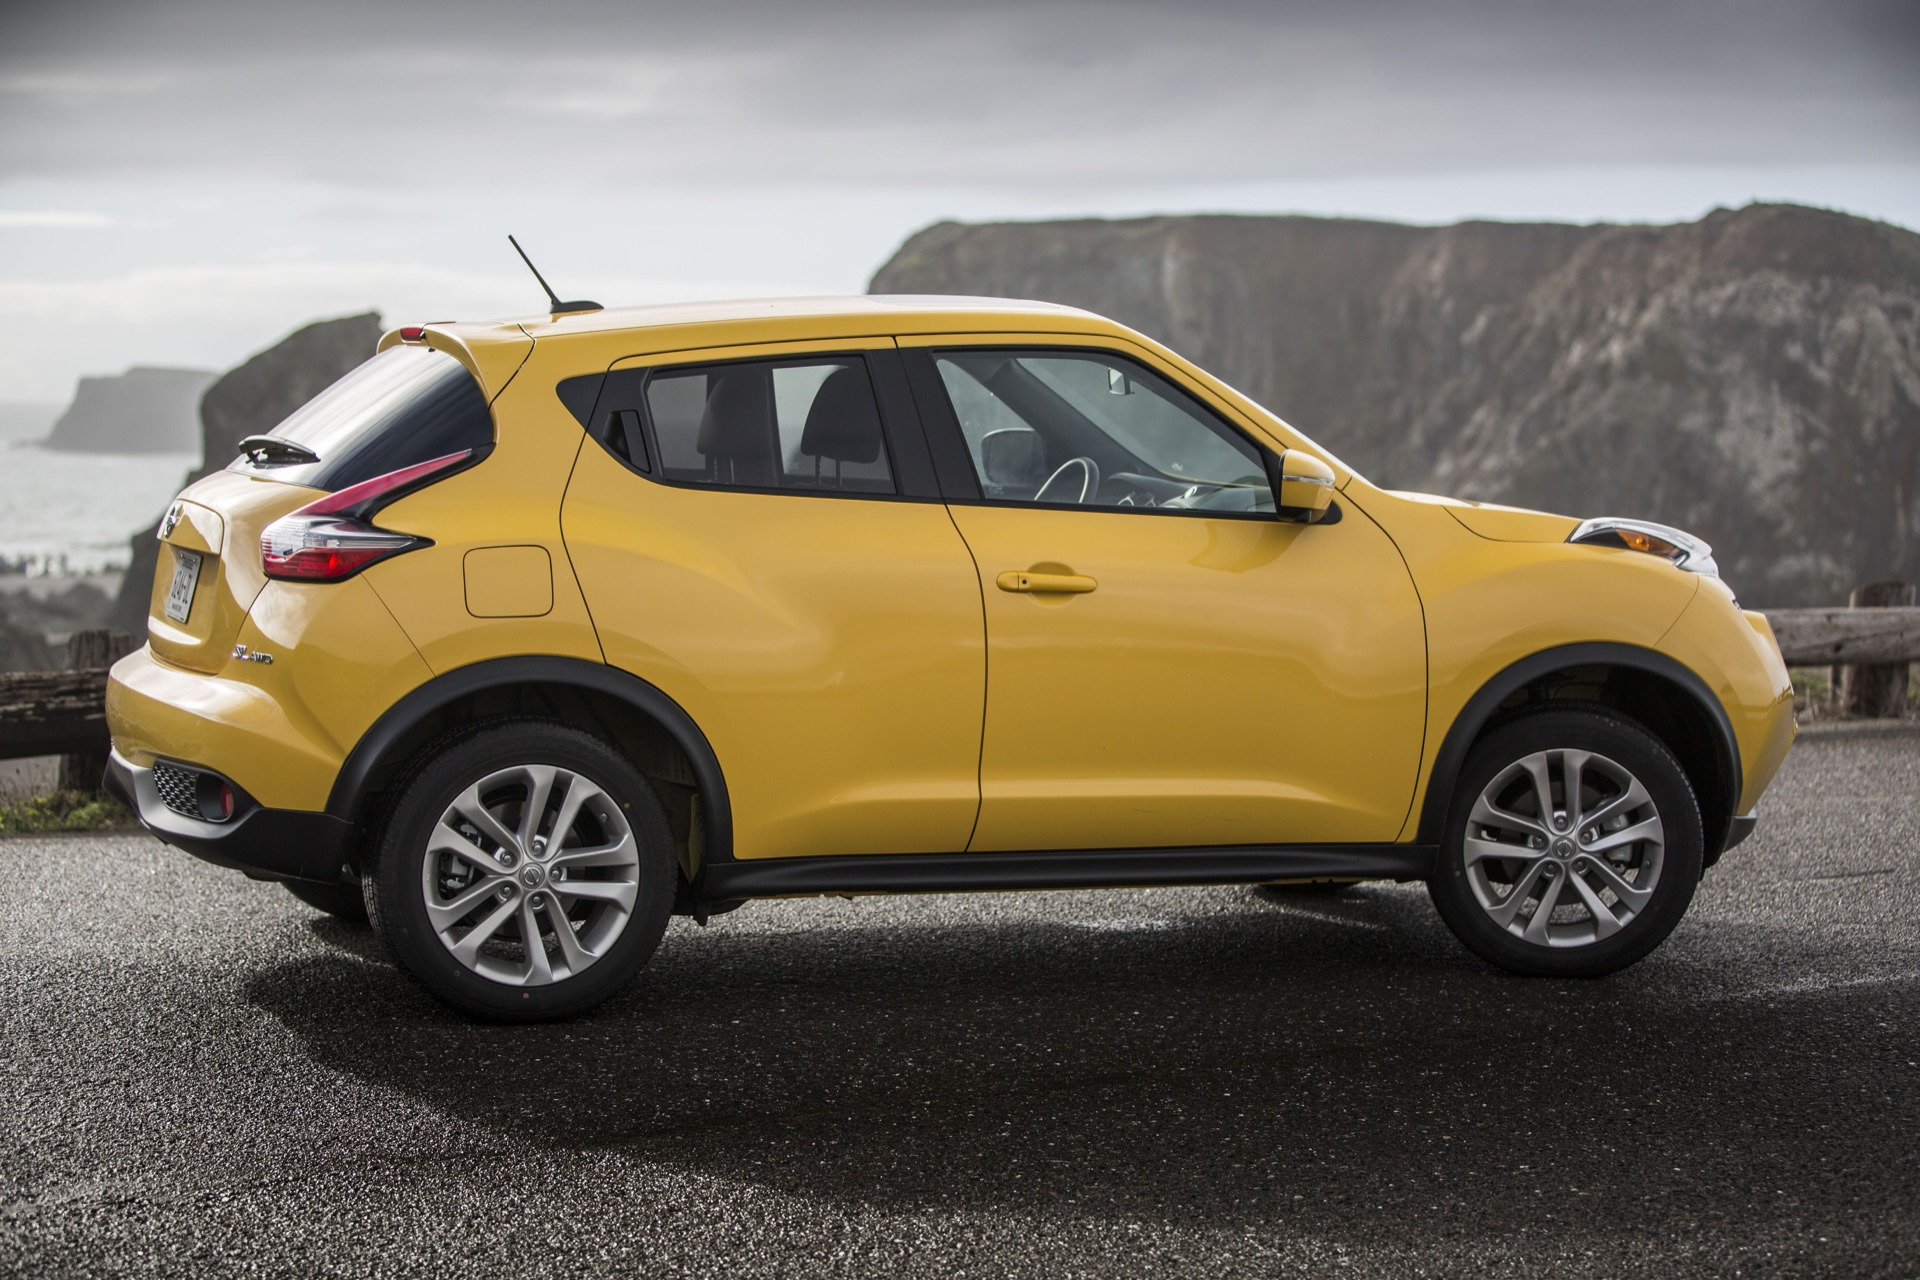 Acura Car Wallpaper 2015 Nissan Juke Quality Review The Car Connection